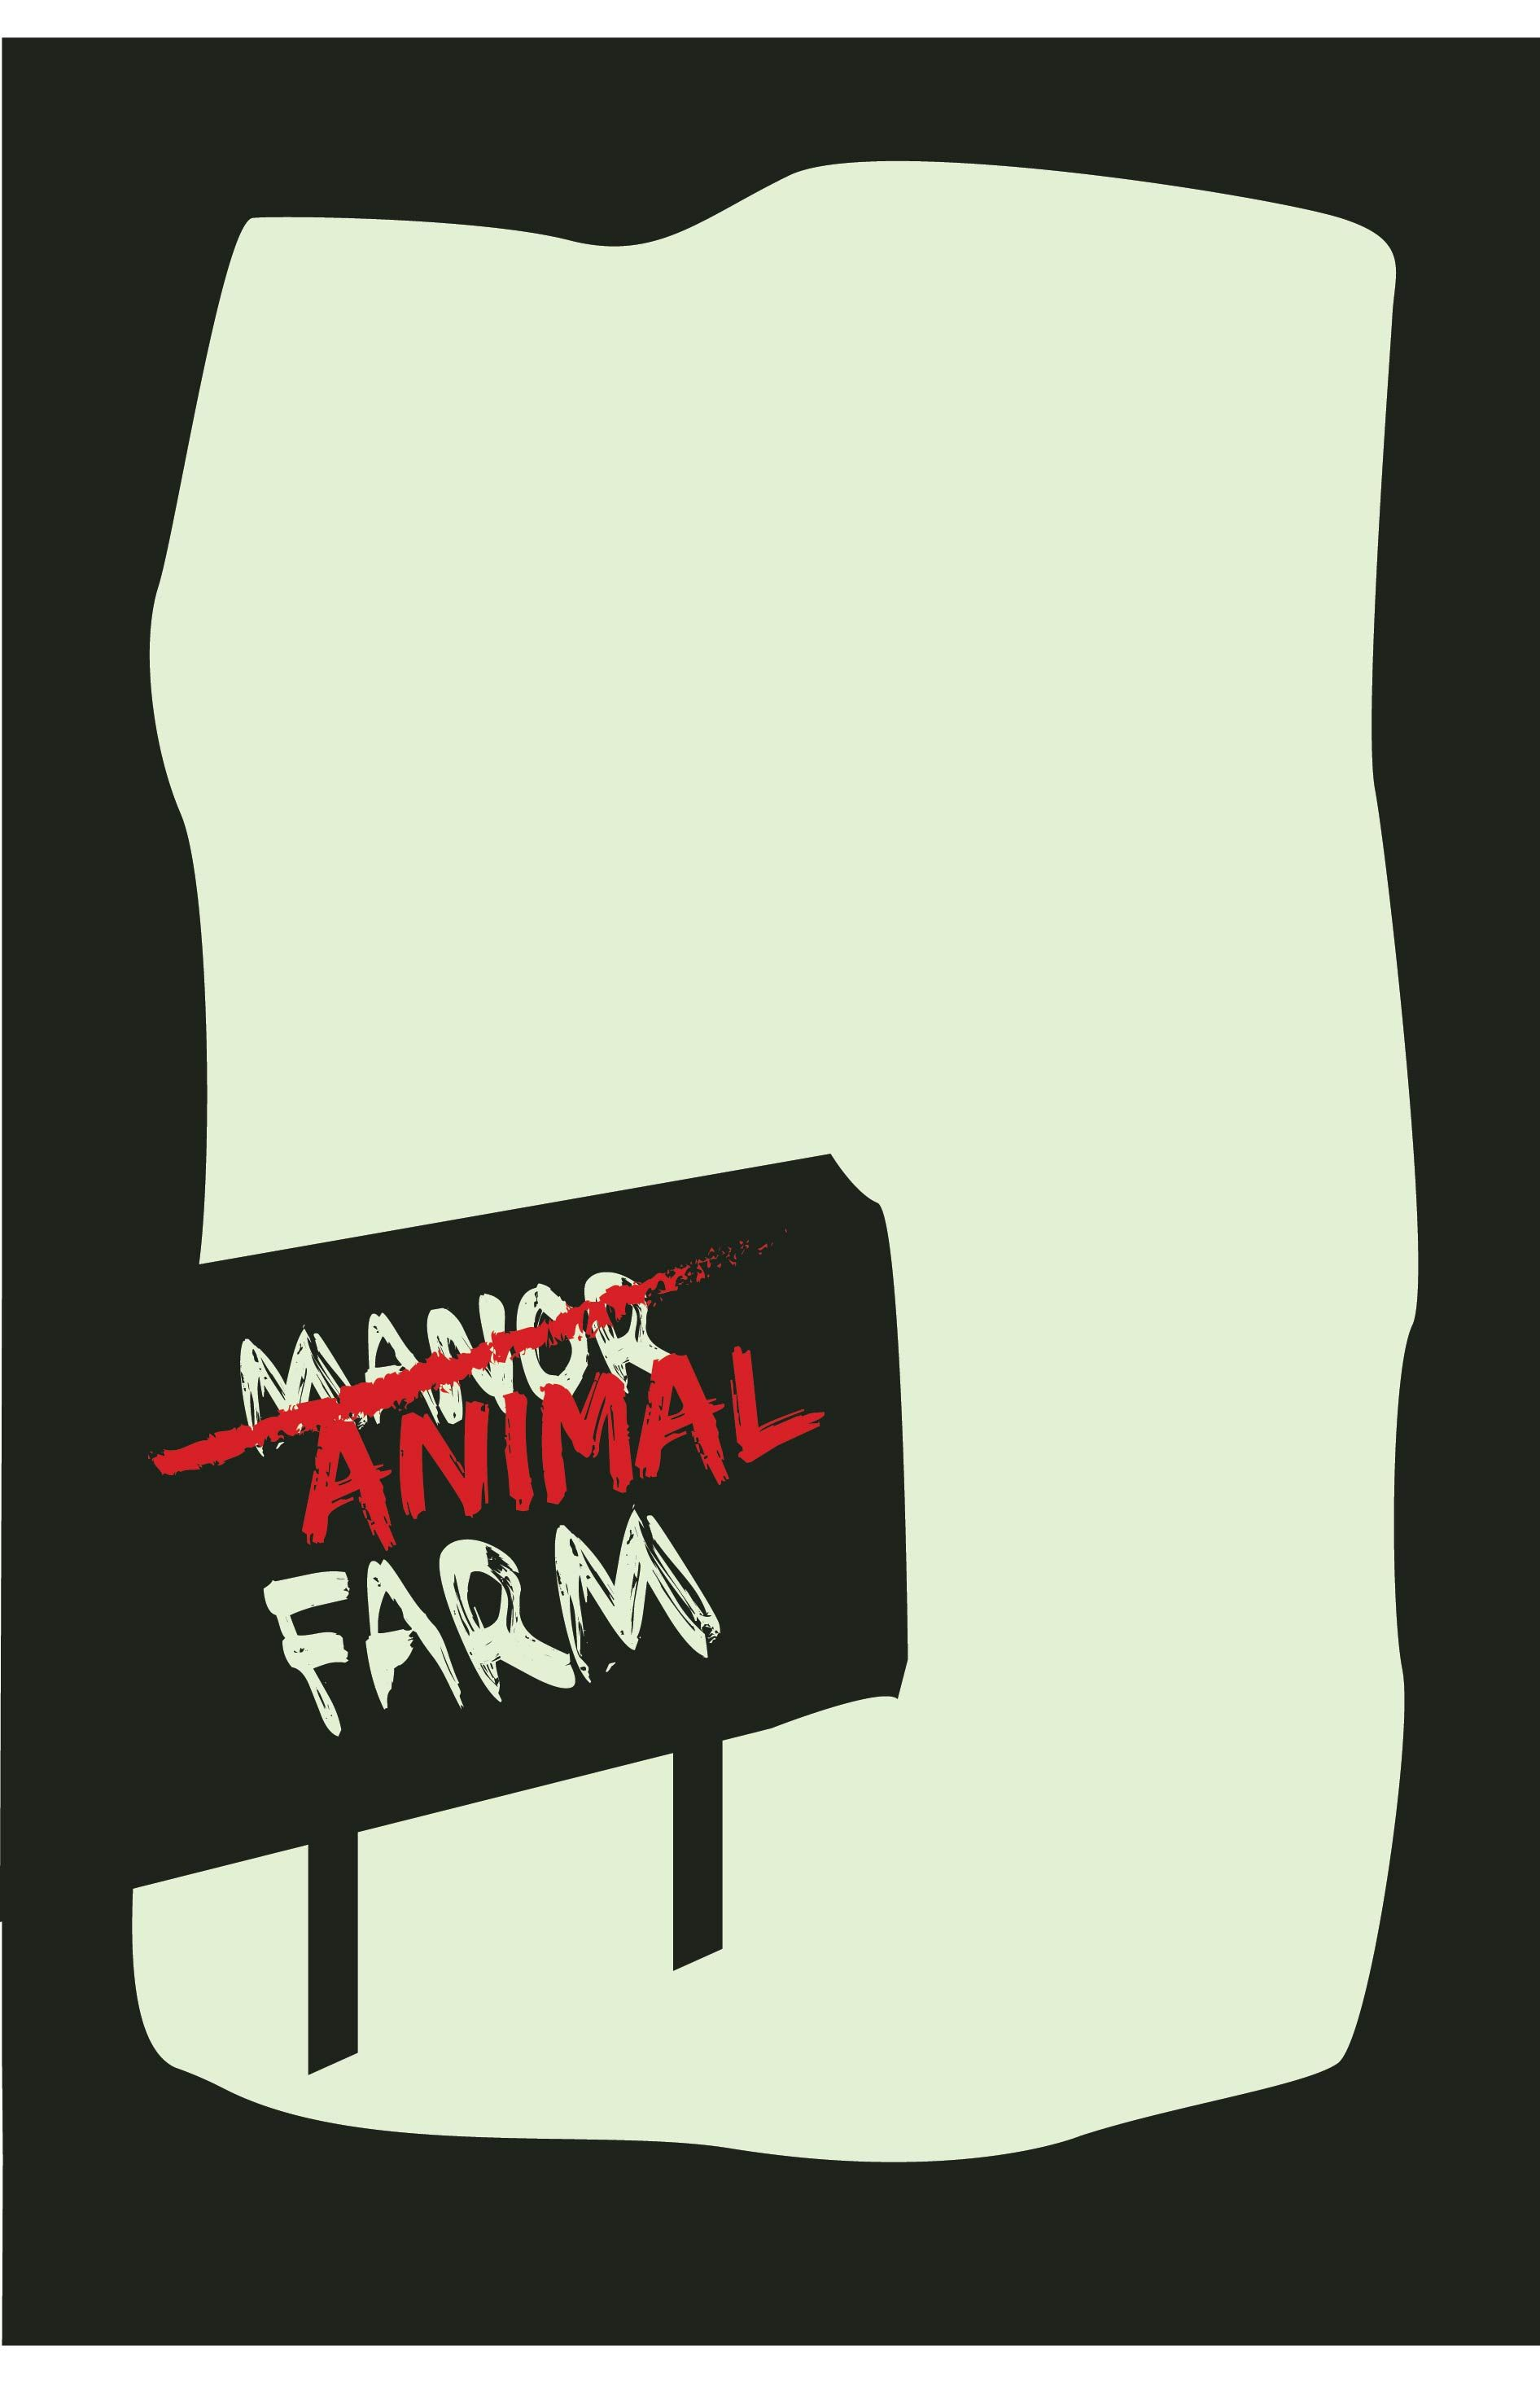 Farming clipart farm sign. Initial idea for